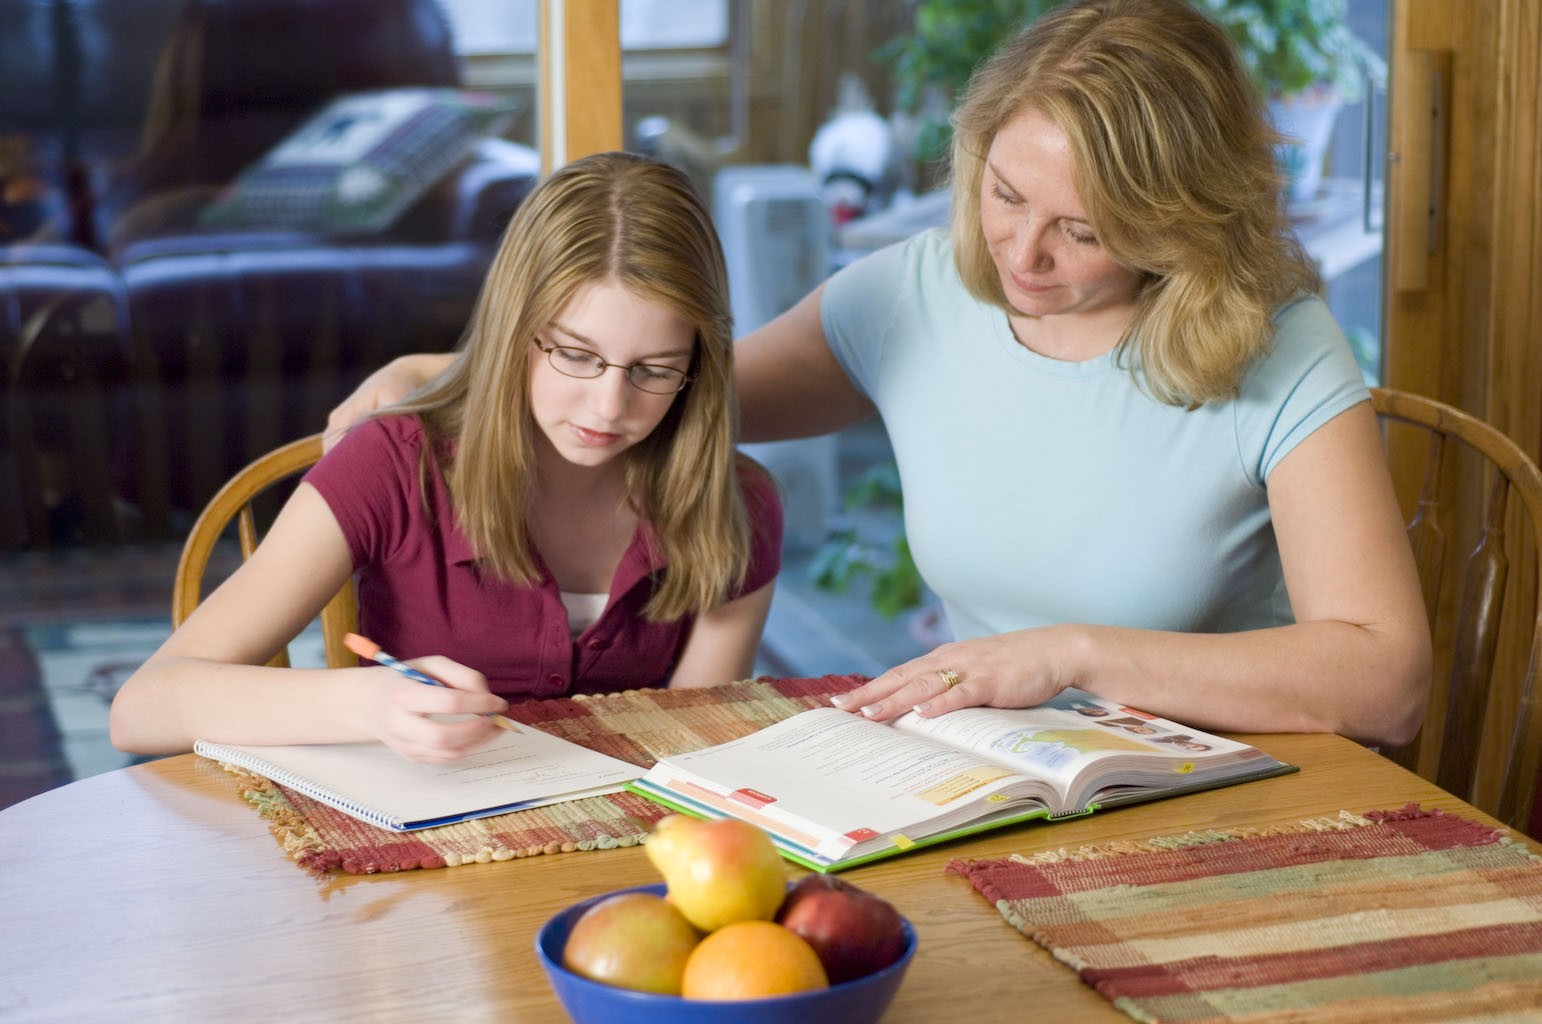 Is Homeschooling Legal?